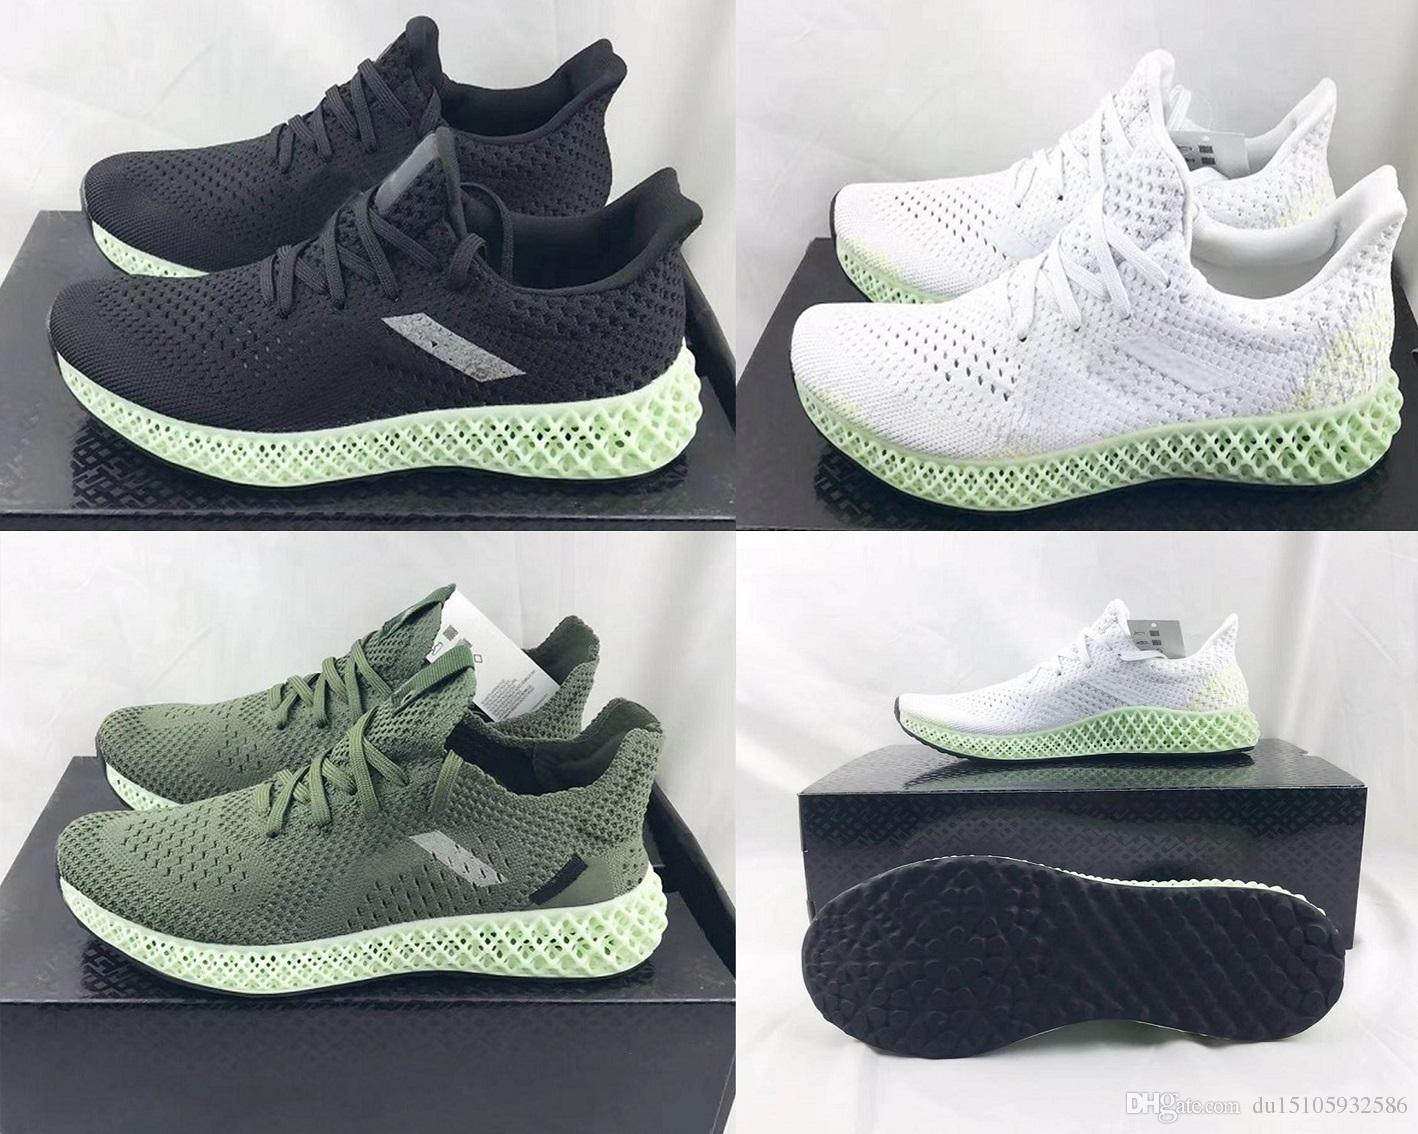 98c9d6b06 2018 Newest Futurecraft Alphaedge 4D Asw Y-3 Runner Y3 Mens Outdoor Casual  Shoe Top Quality Size39~46 with Original Box Futurecraft Alphaedge 4D 4D ...